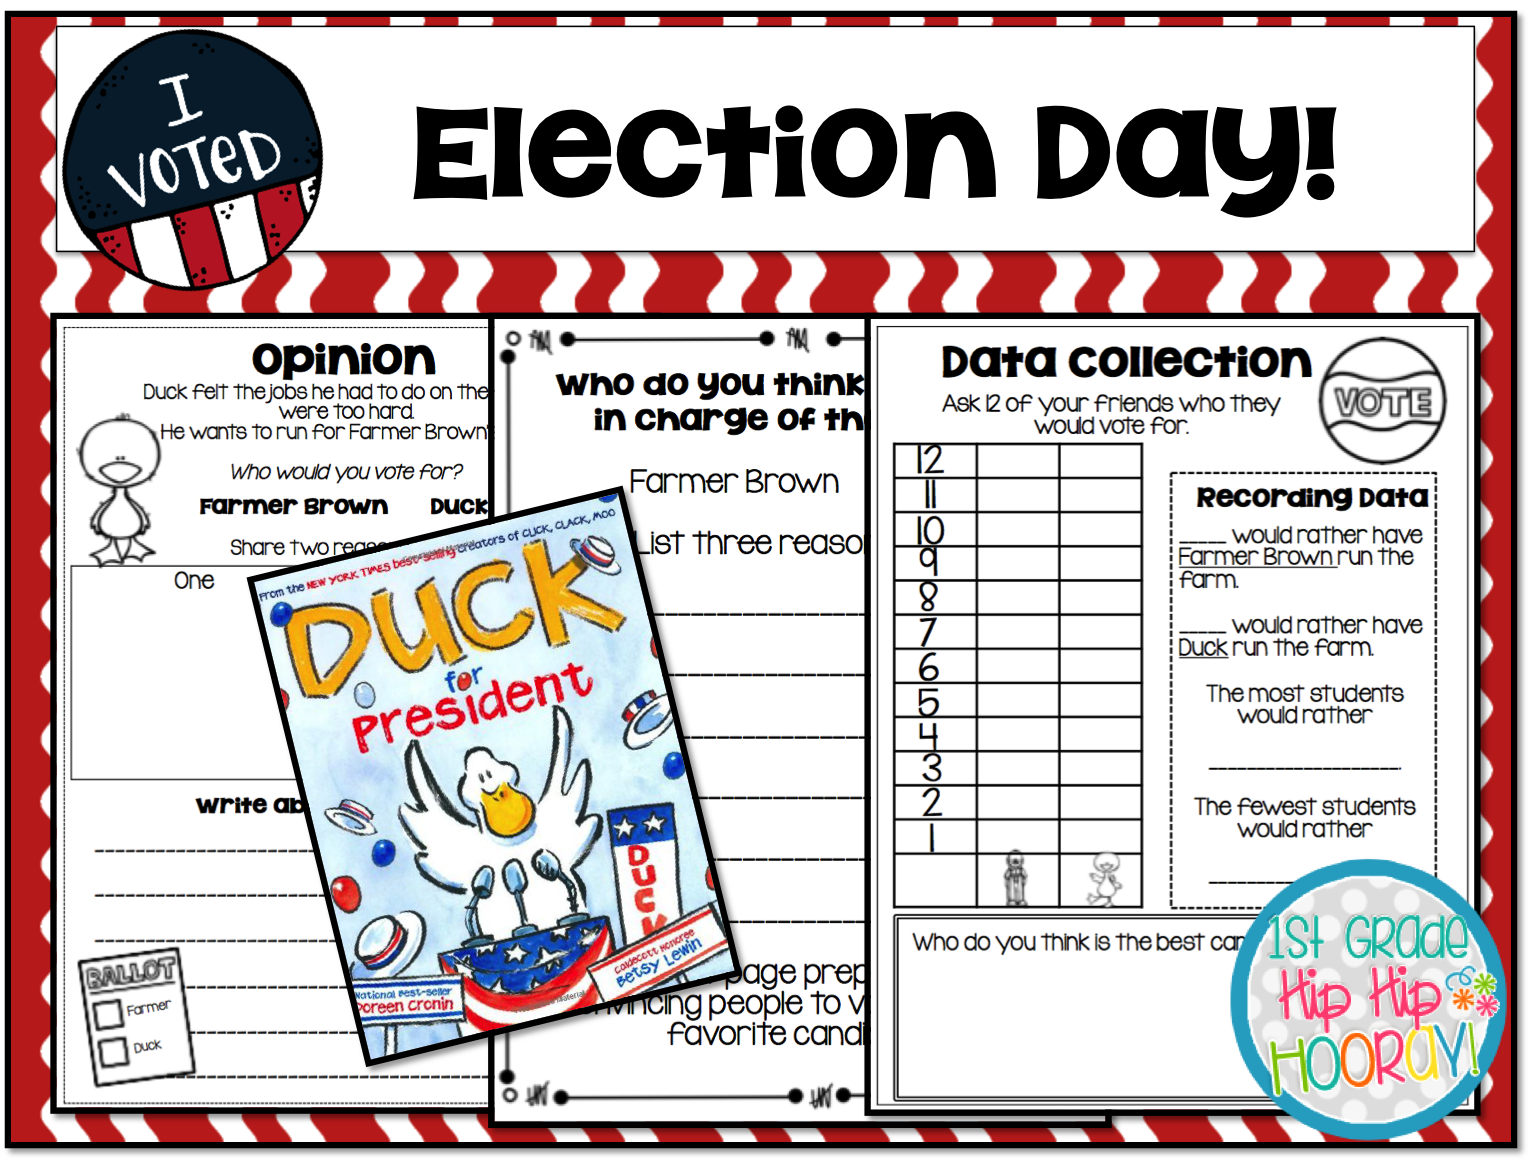 1st Grade Hip Hip Hooray Election Day Vember 7th